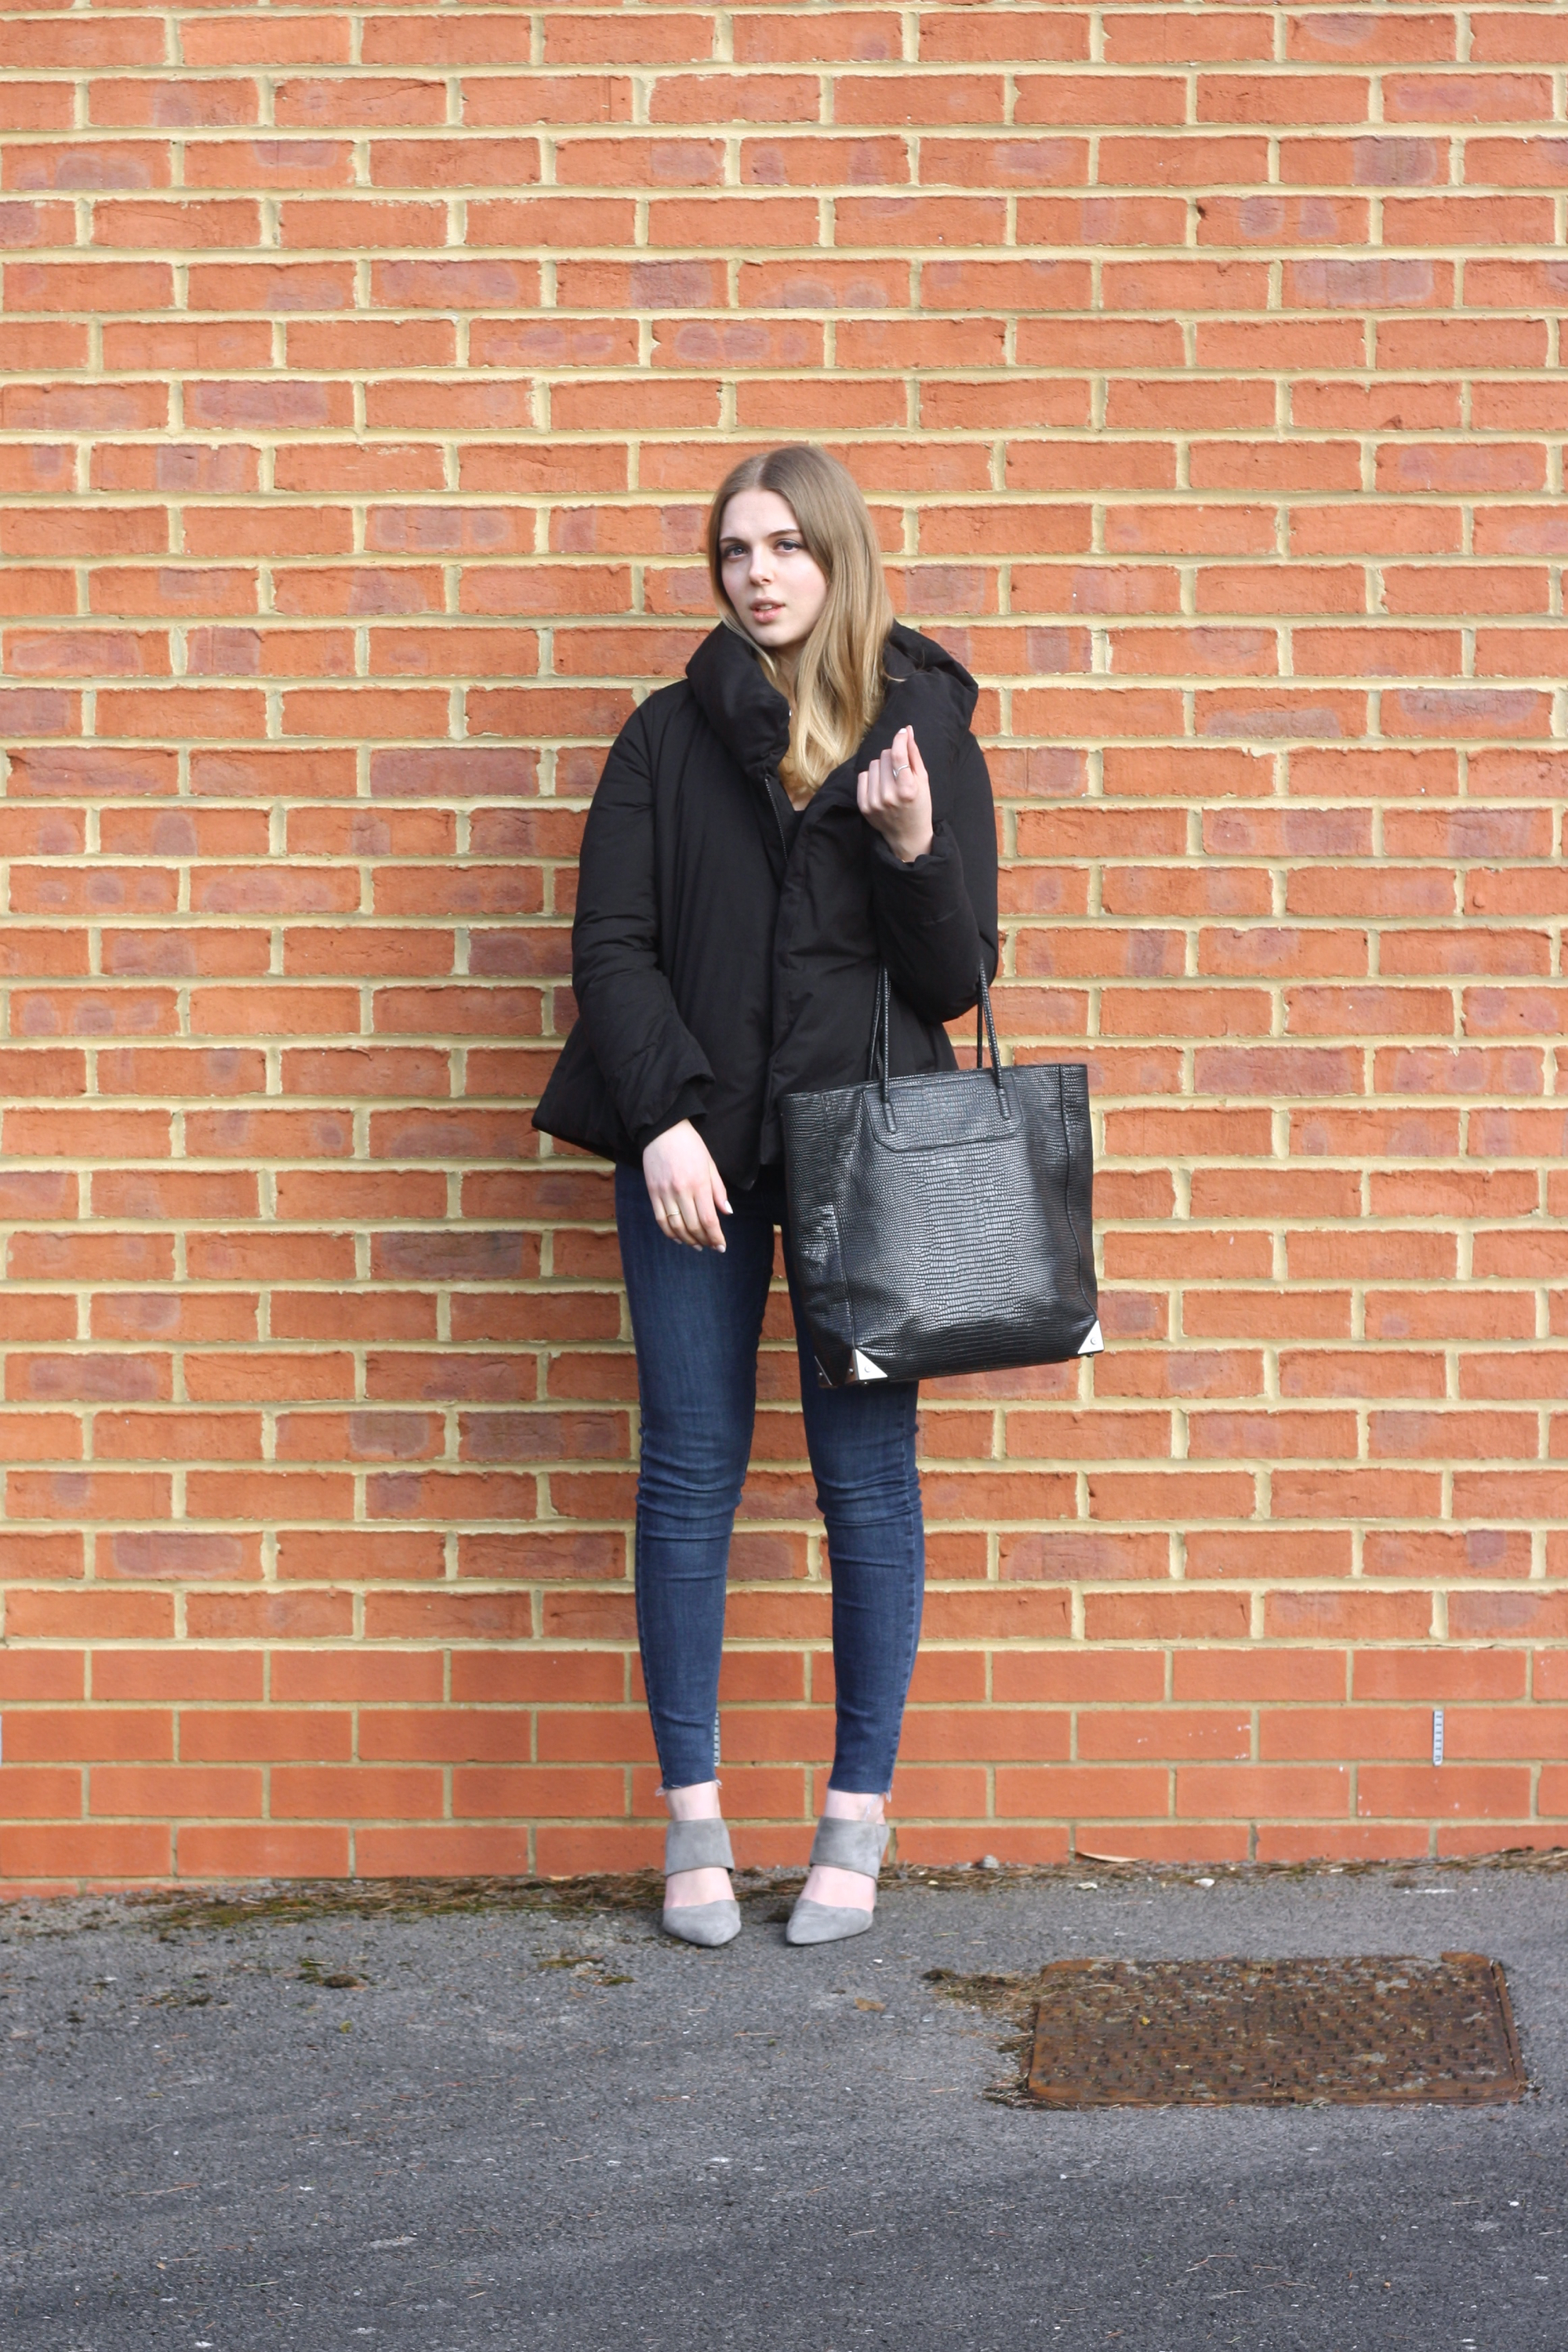 Whistles grey suede mules, Alexander Wang Prisma lizard tote and Topshop blue Jamie skinny jeans